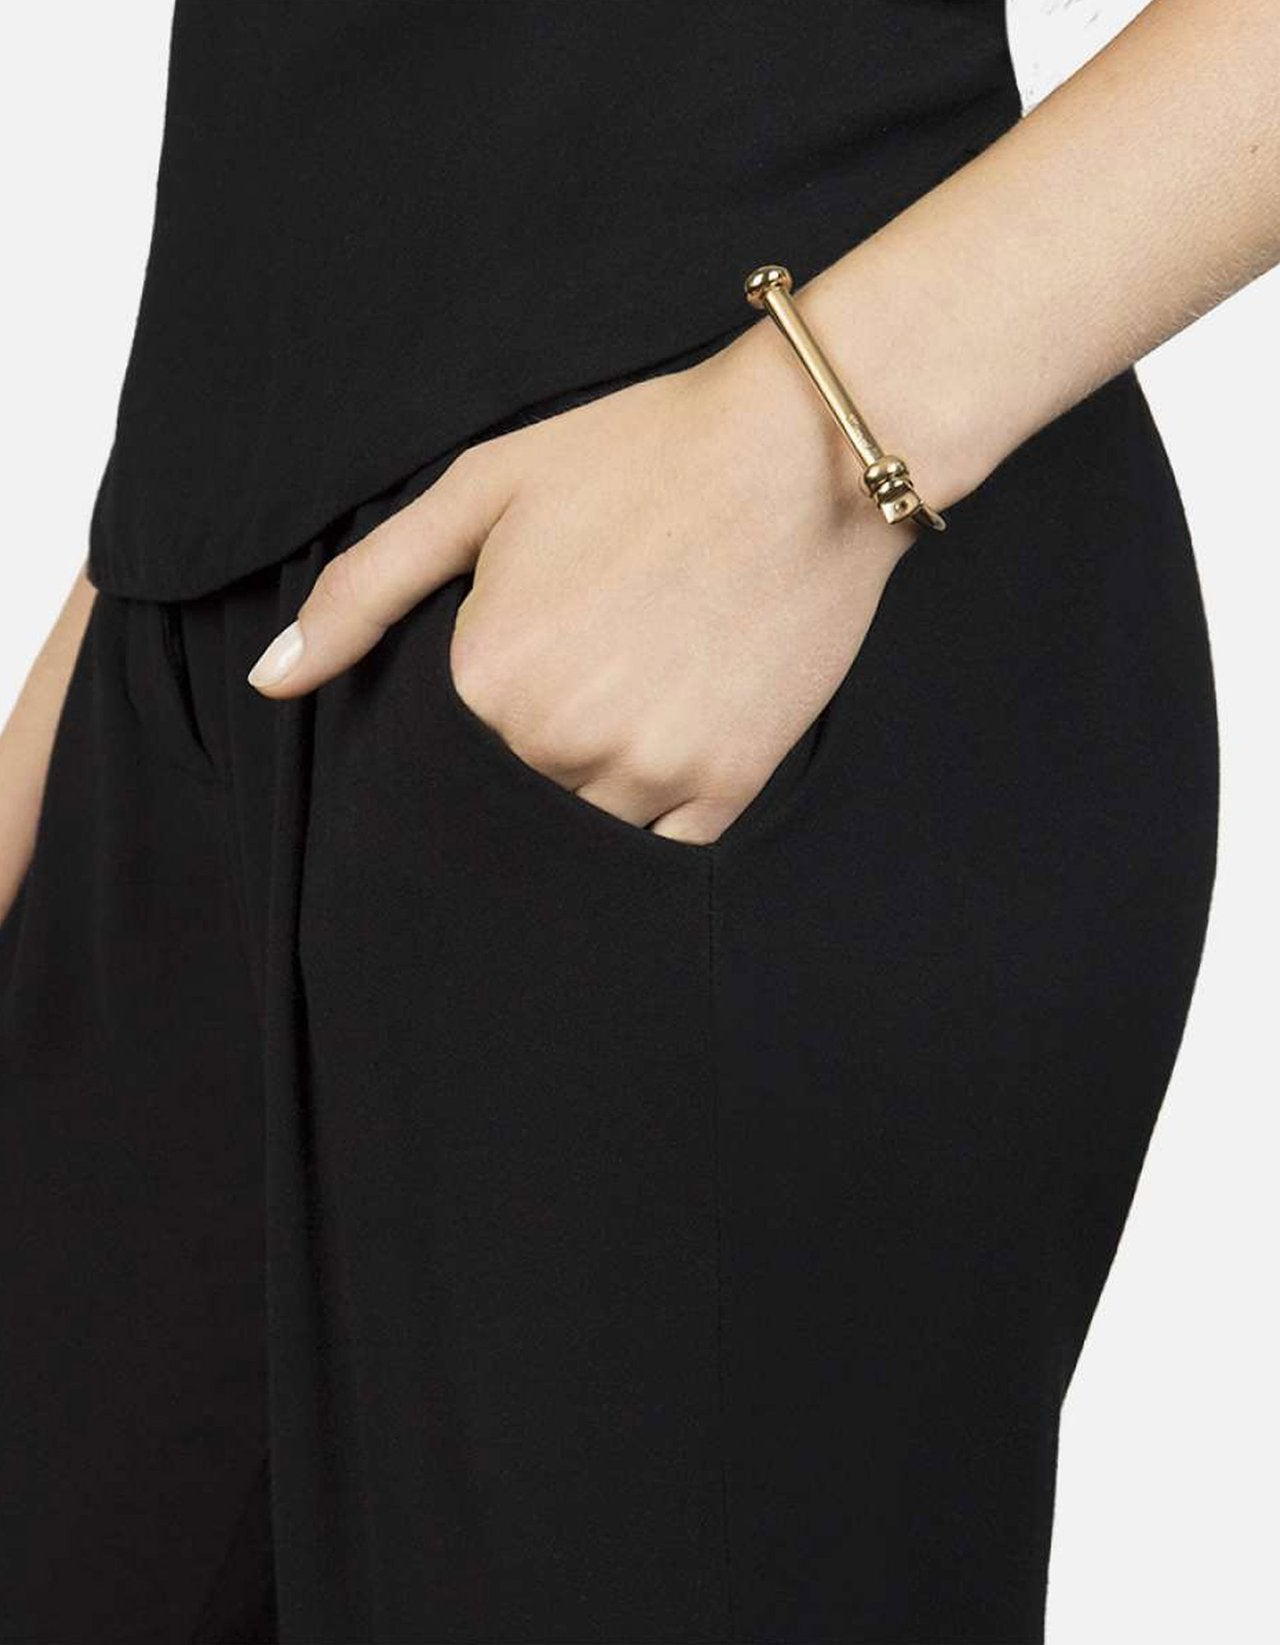 SCREW CUFF BRACELET, GOLD